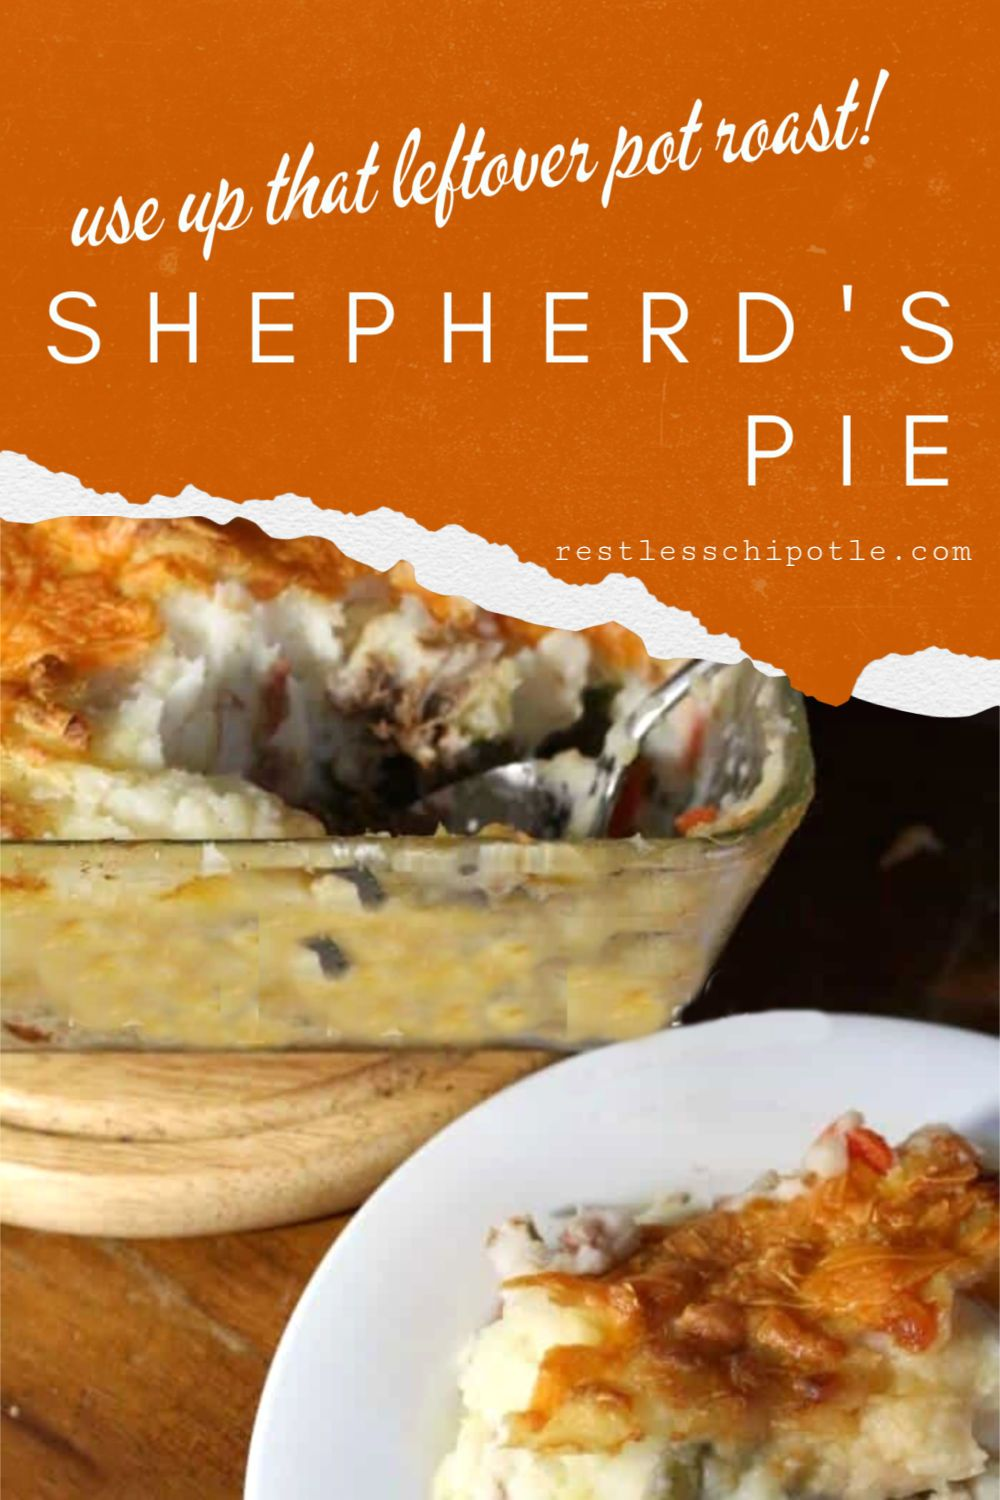 Easy Shepherd S Pie With Leftover Pot Roast Recipe Favorite Casserole Recipes Easy Family Meals Shepherds Pie Recipe Easy